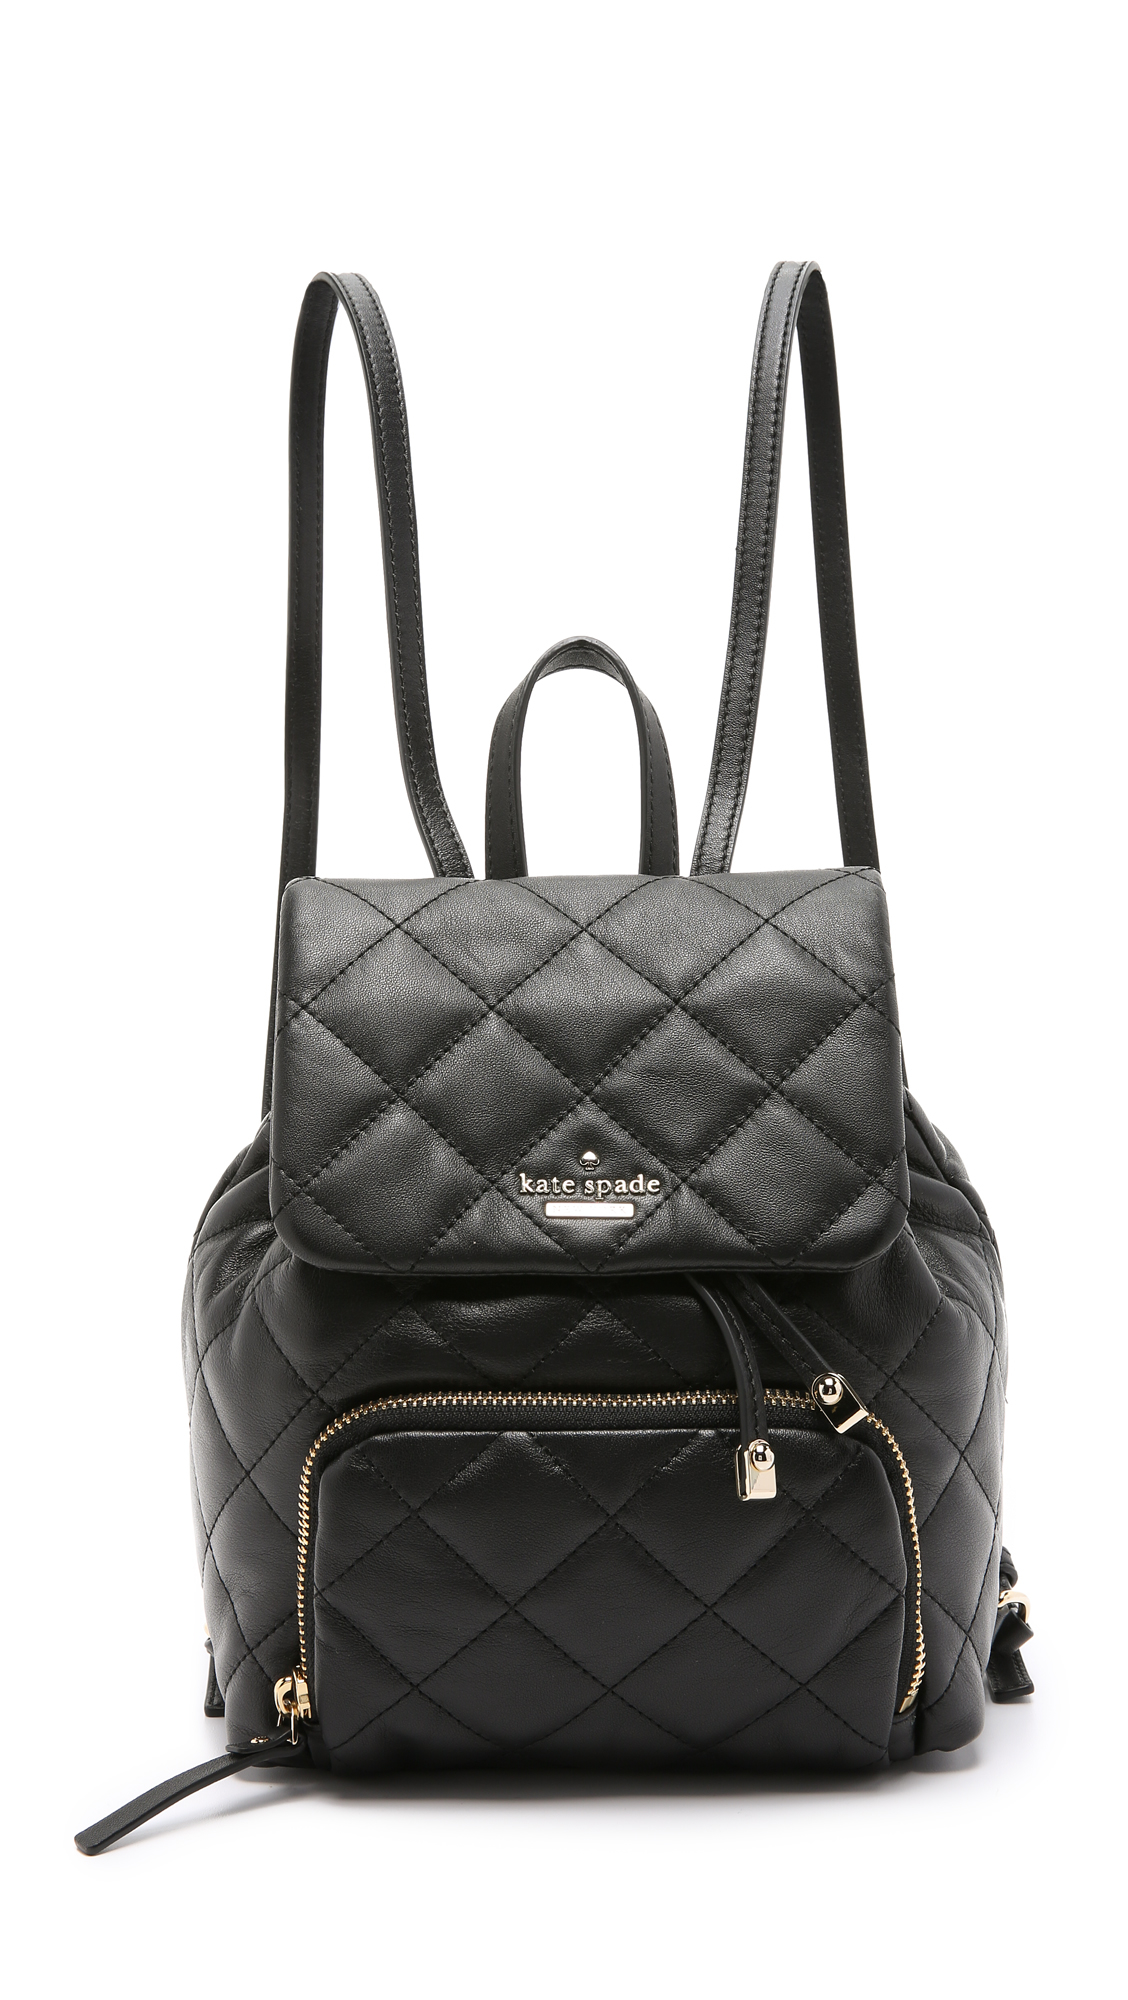 Kate Spade New York Emerson Place Jessa Backpack Black